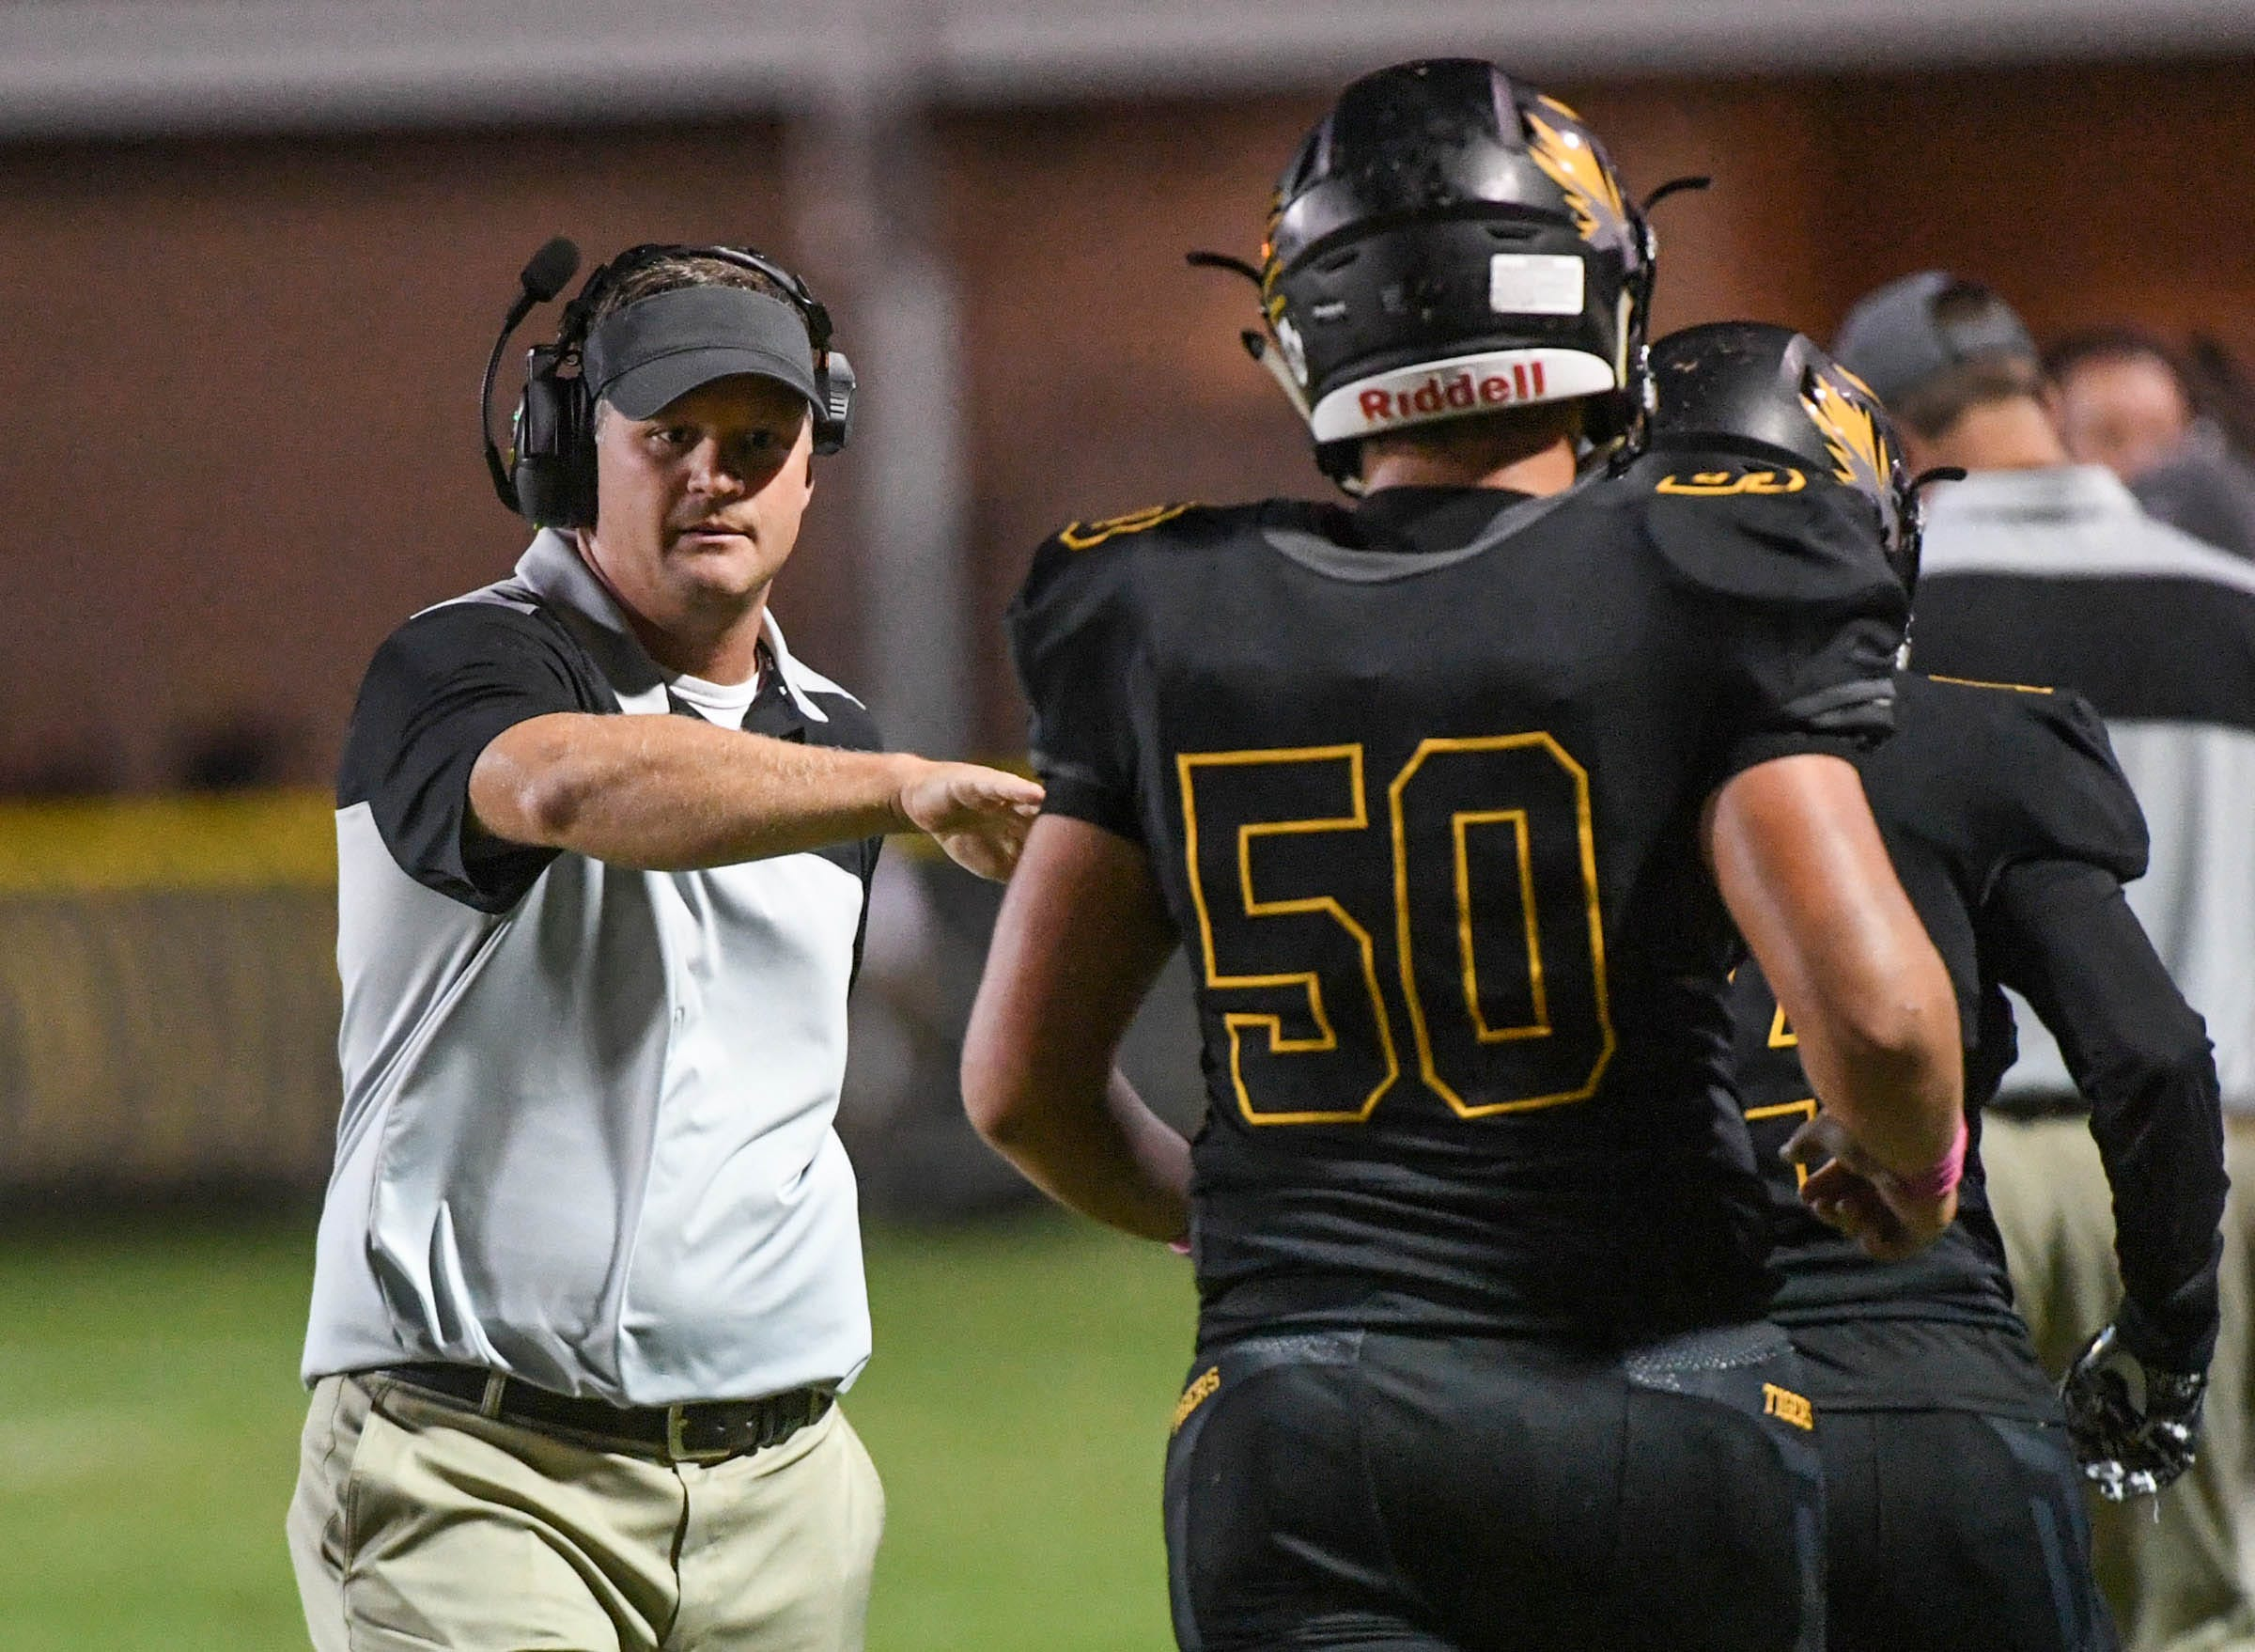 Crescent head coach Sheldon Evans congratulates Crescent senior Dawson Hanks after the team scored a touchdown during the fourth quarter at Crescent High School in Iva on Friday, October 12, 2018.